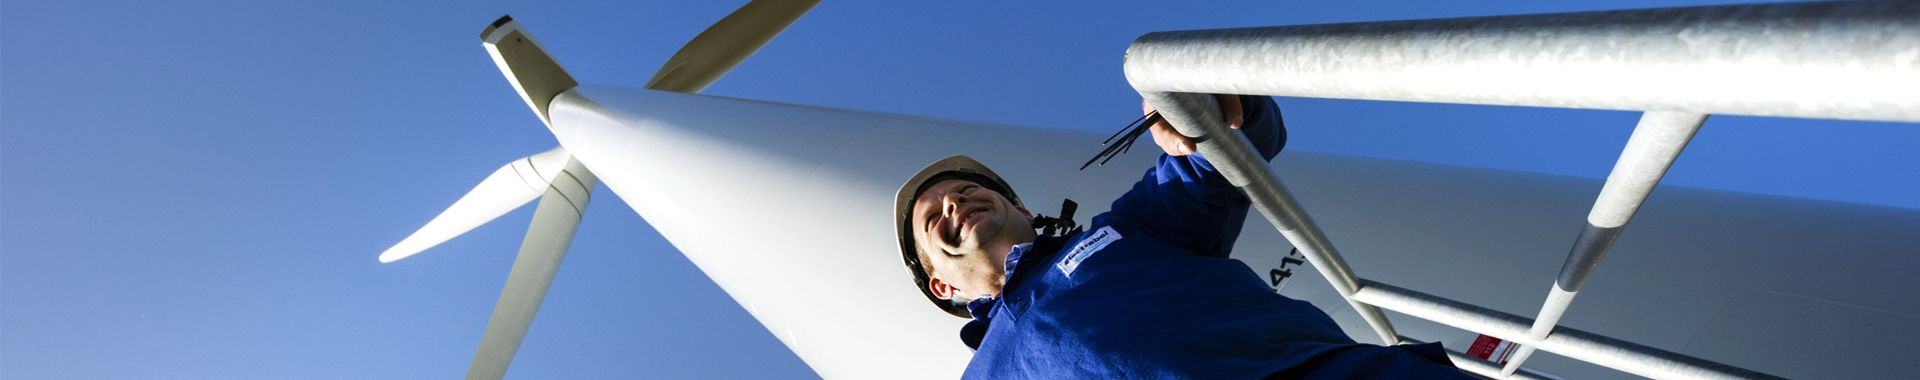 Technician and windturbine